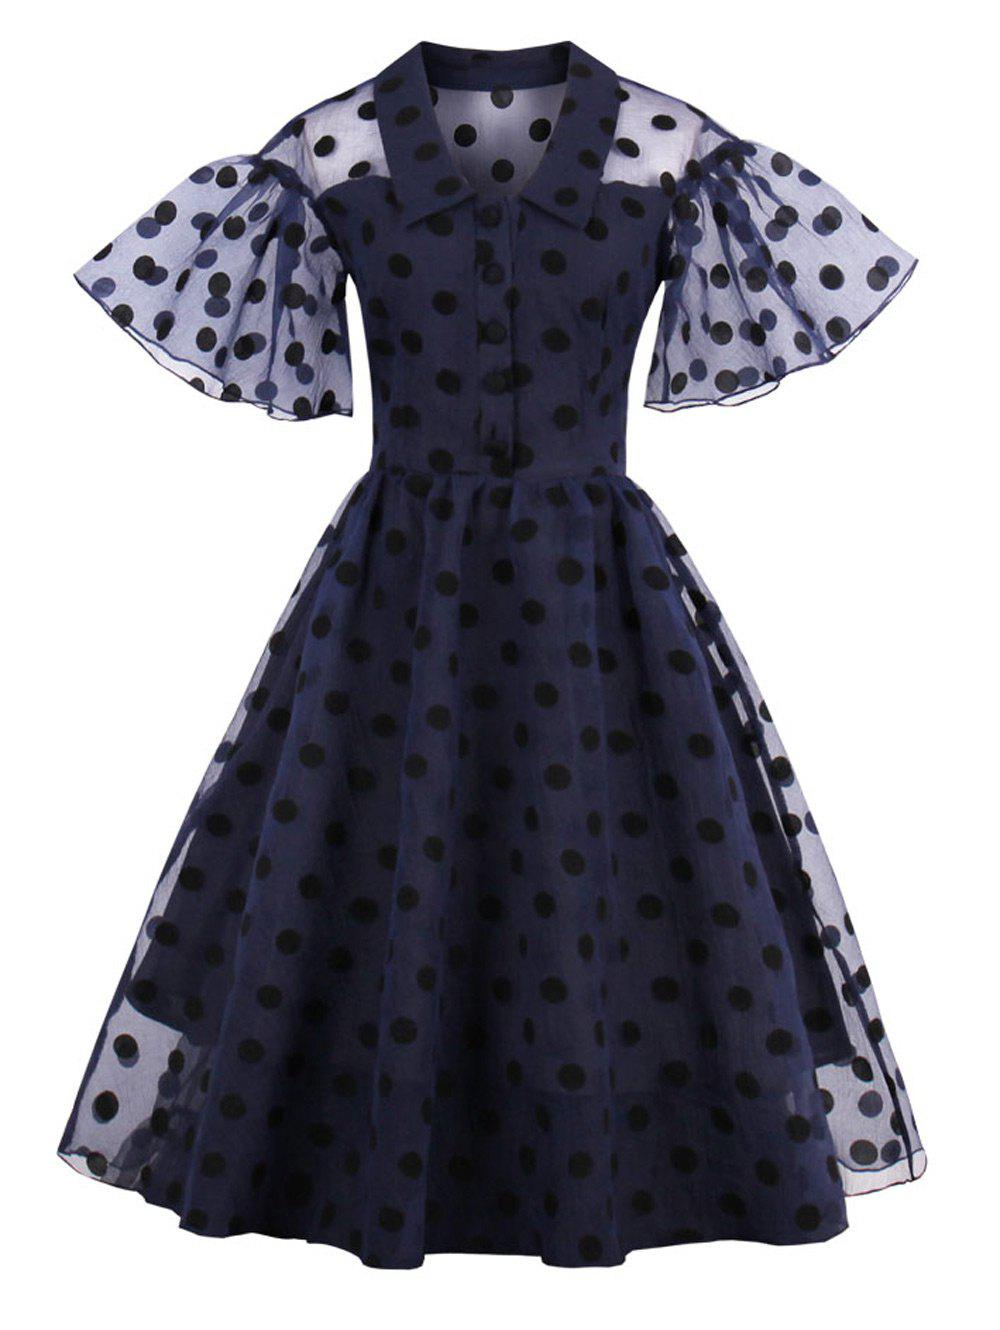 Unique Polka Dot Vintage Pin Up Dress